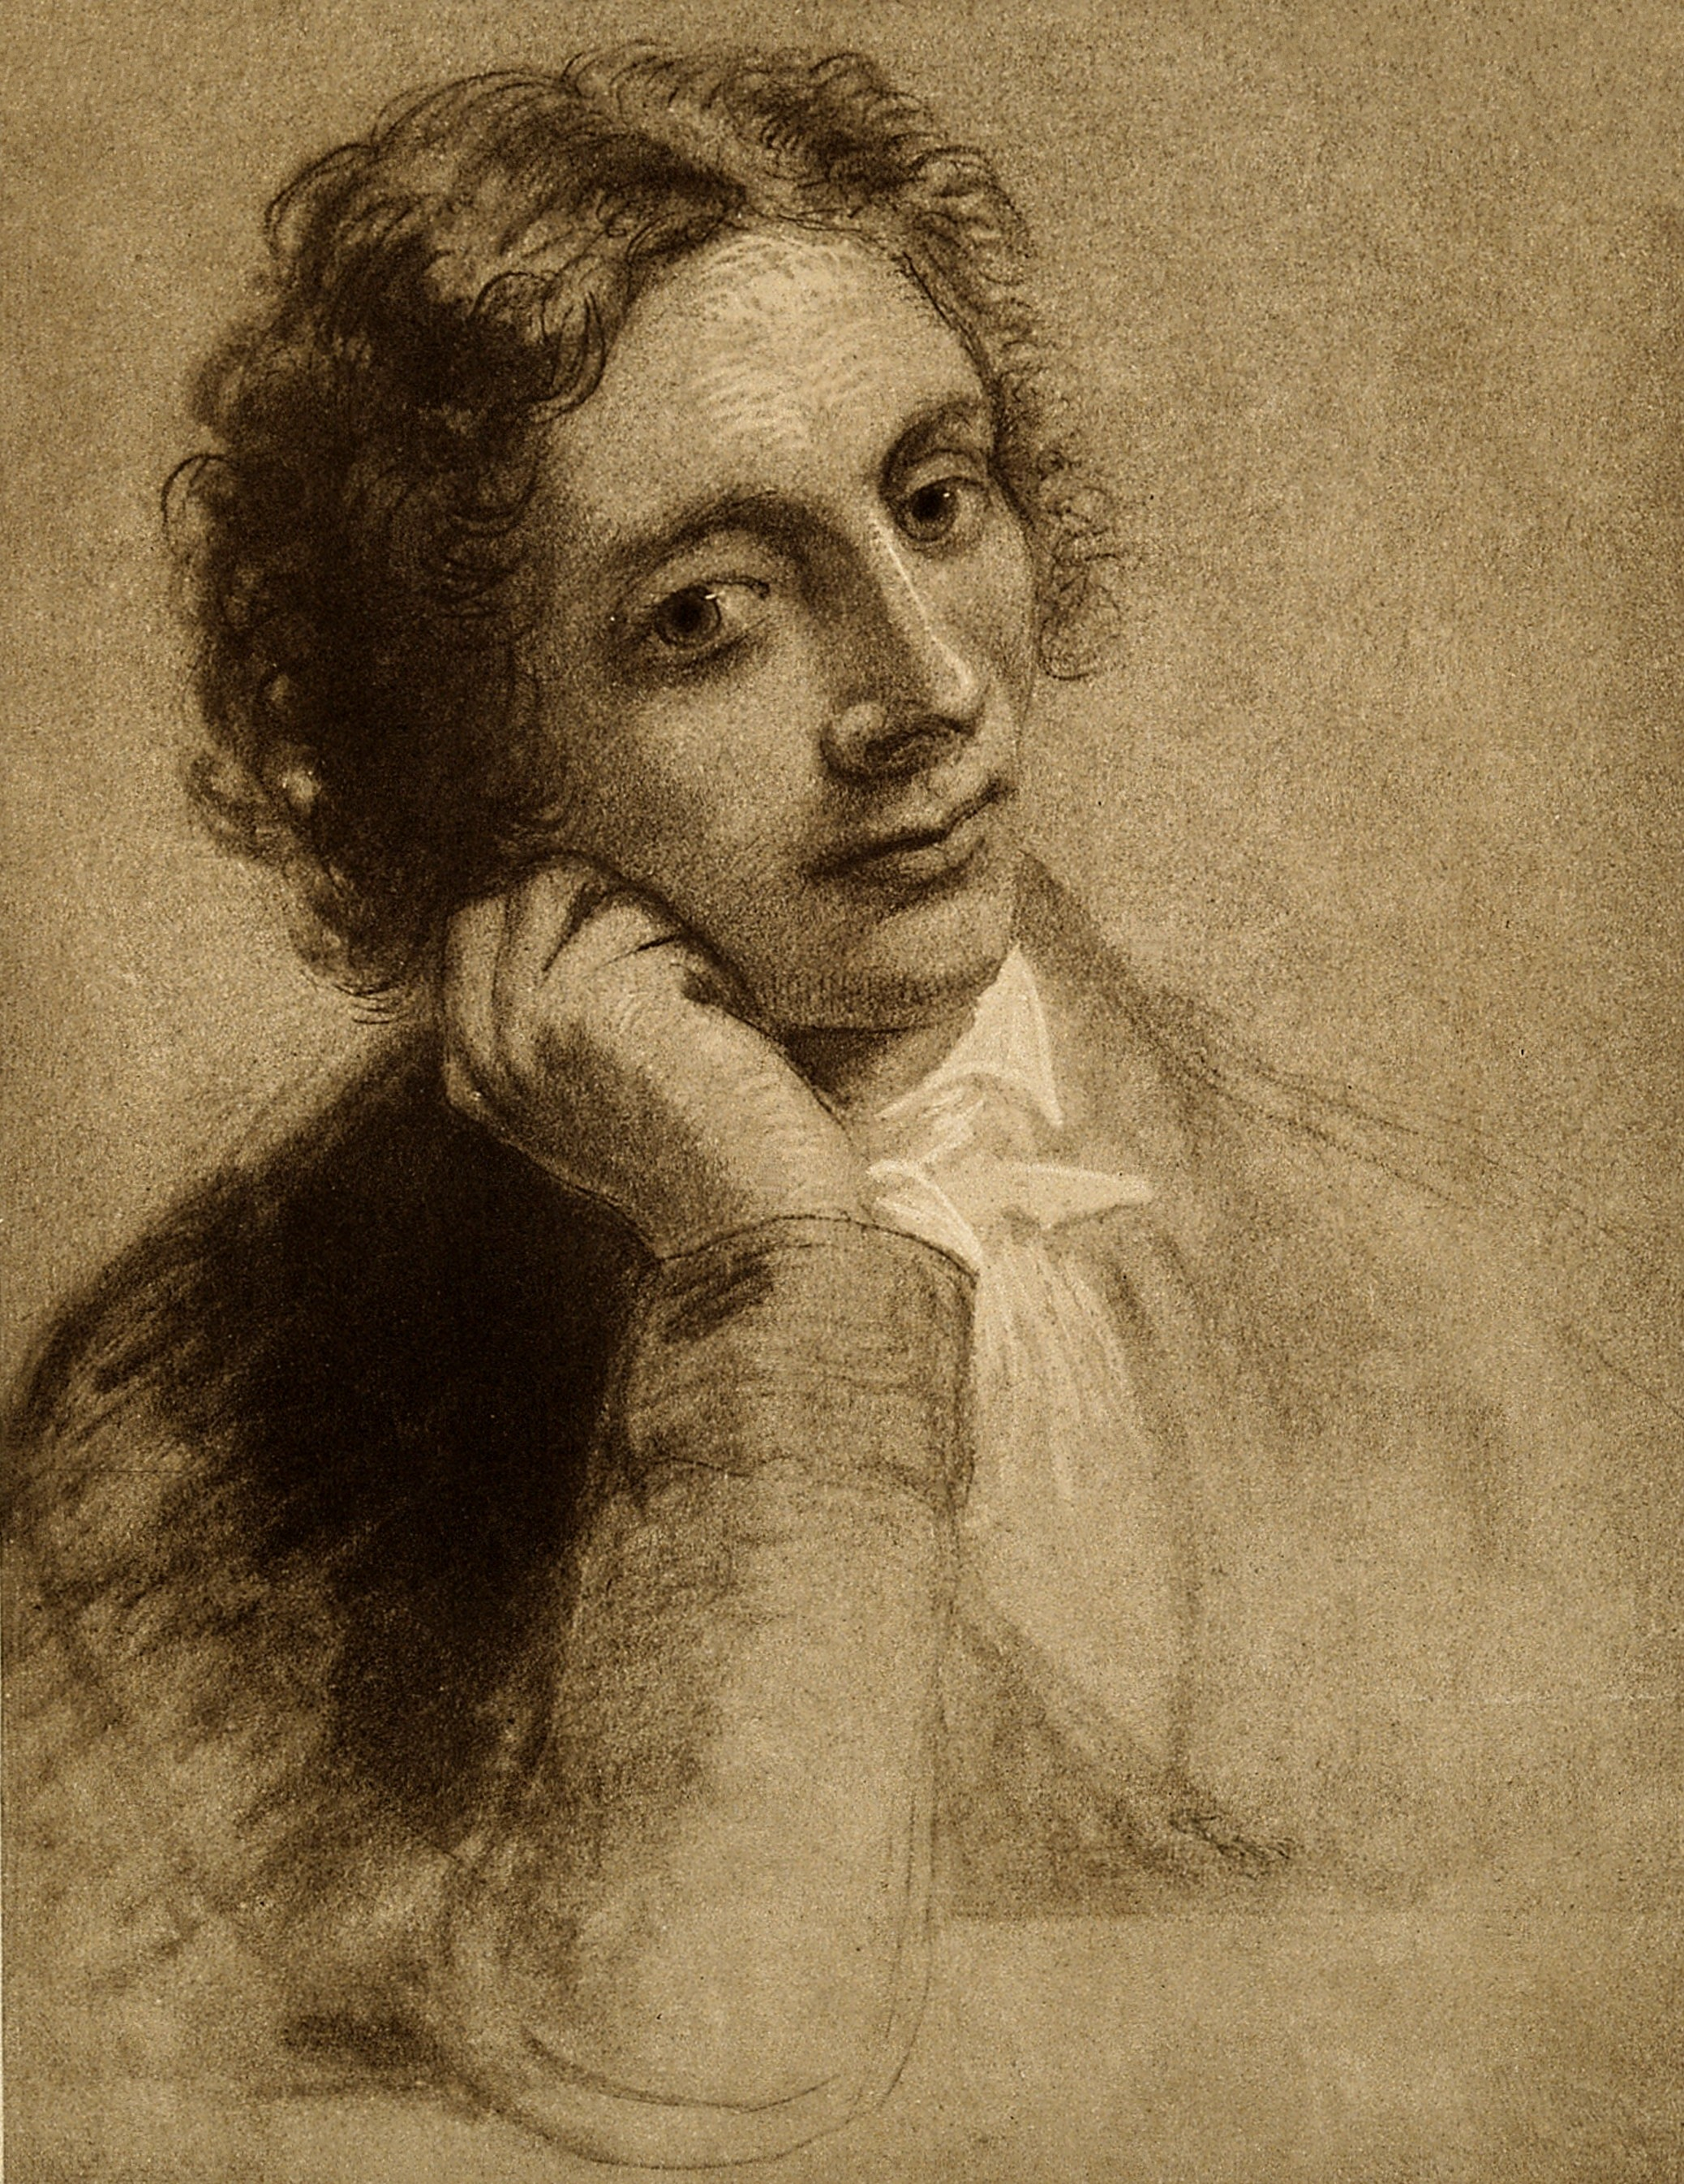 arts essays john keats beauty and truth Beauty is truth, truth beauty essay 767 words 4 pages of the five odes written by john keats, this ode was written to show the beauty of love through a work of art.